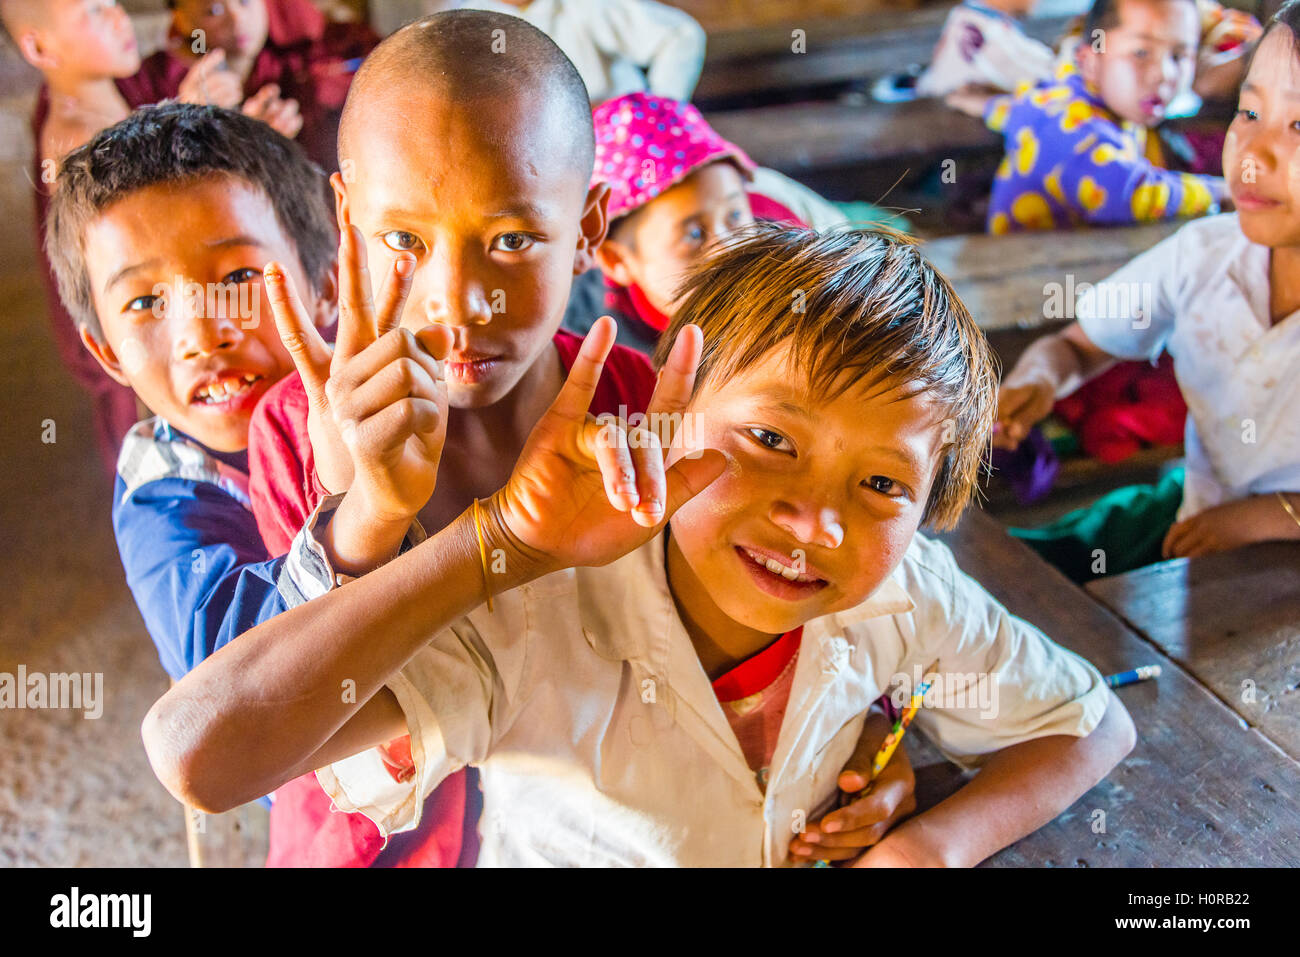 School children at school, posing for camera, Shan State, Myanmar - Stock Image